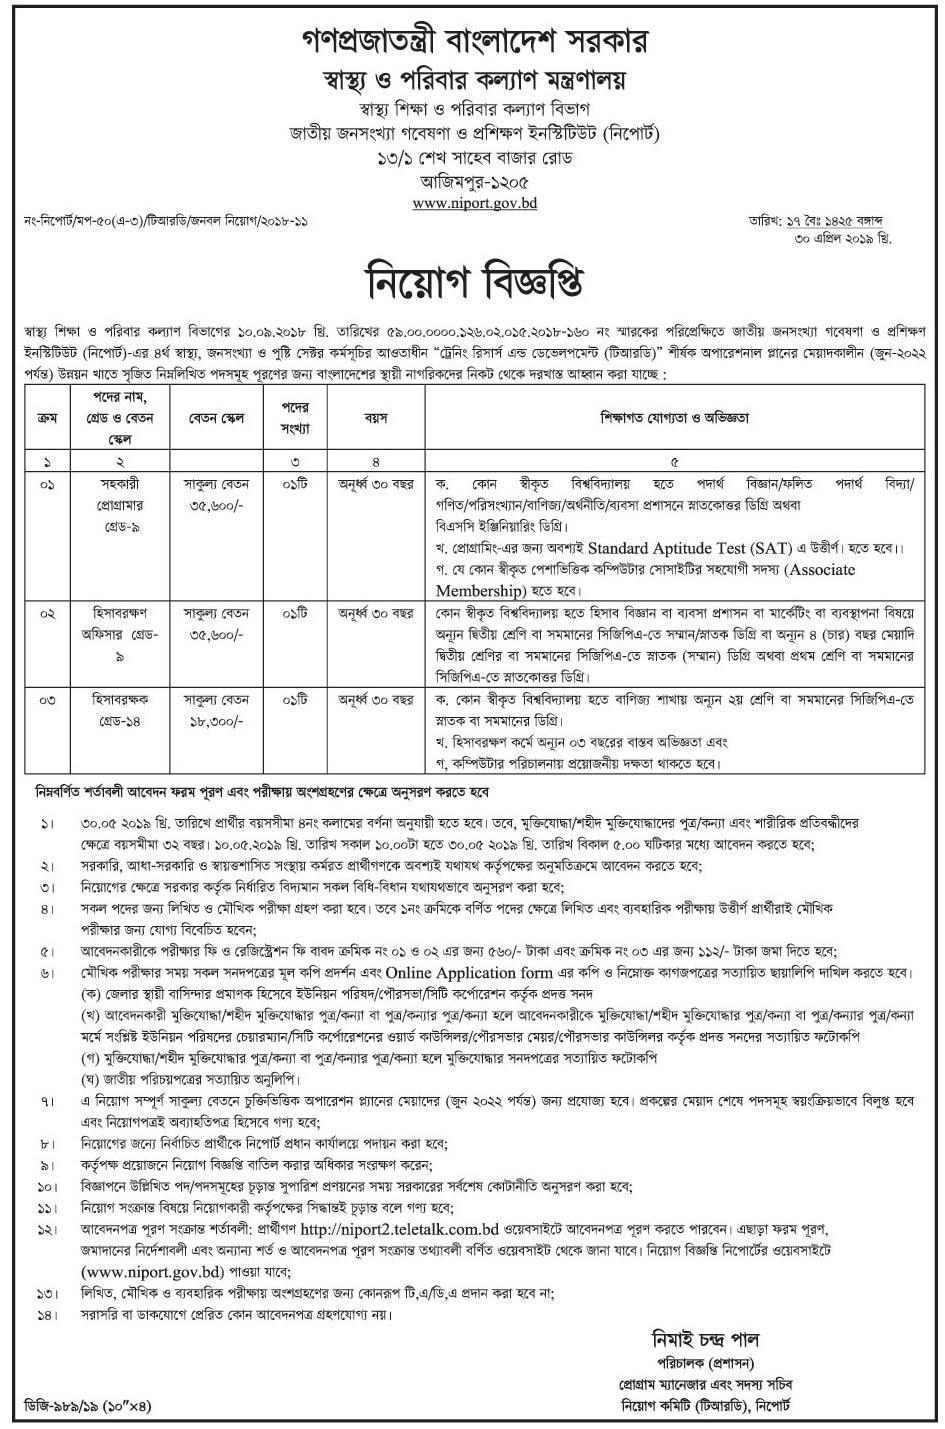 Health Ministry Job Circular In 2019